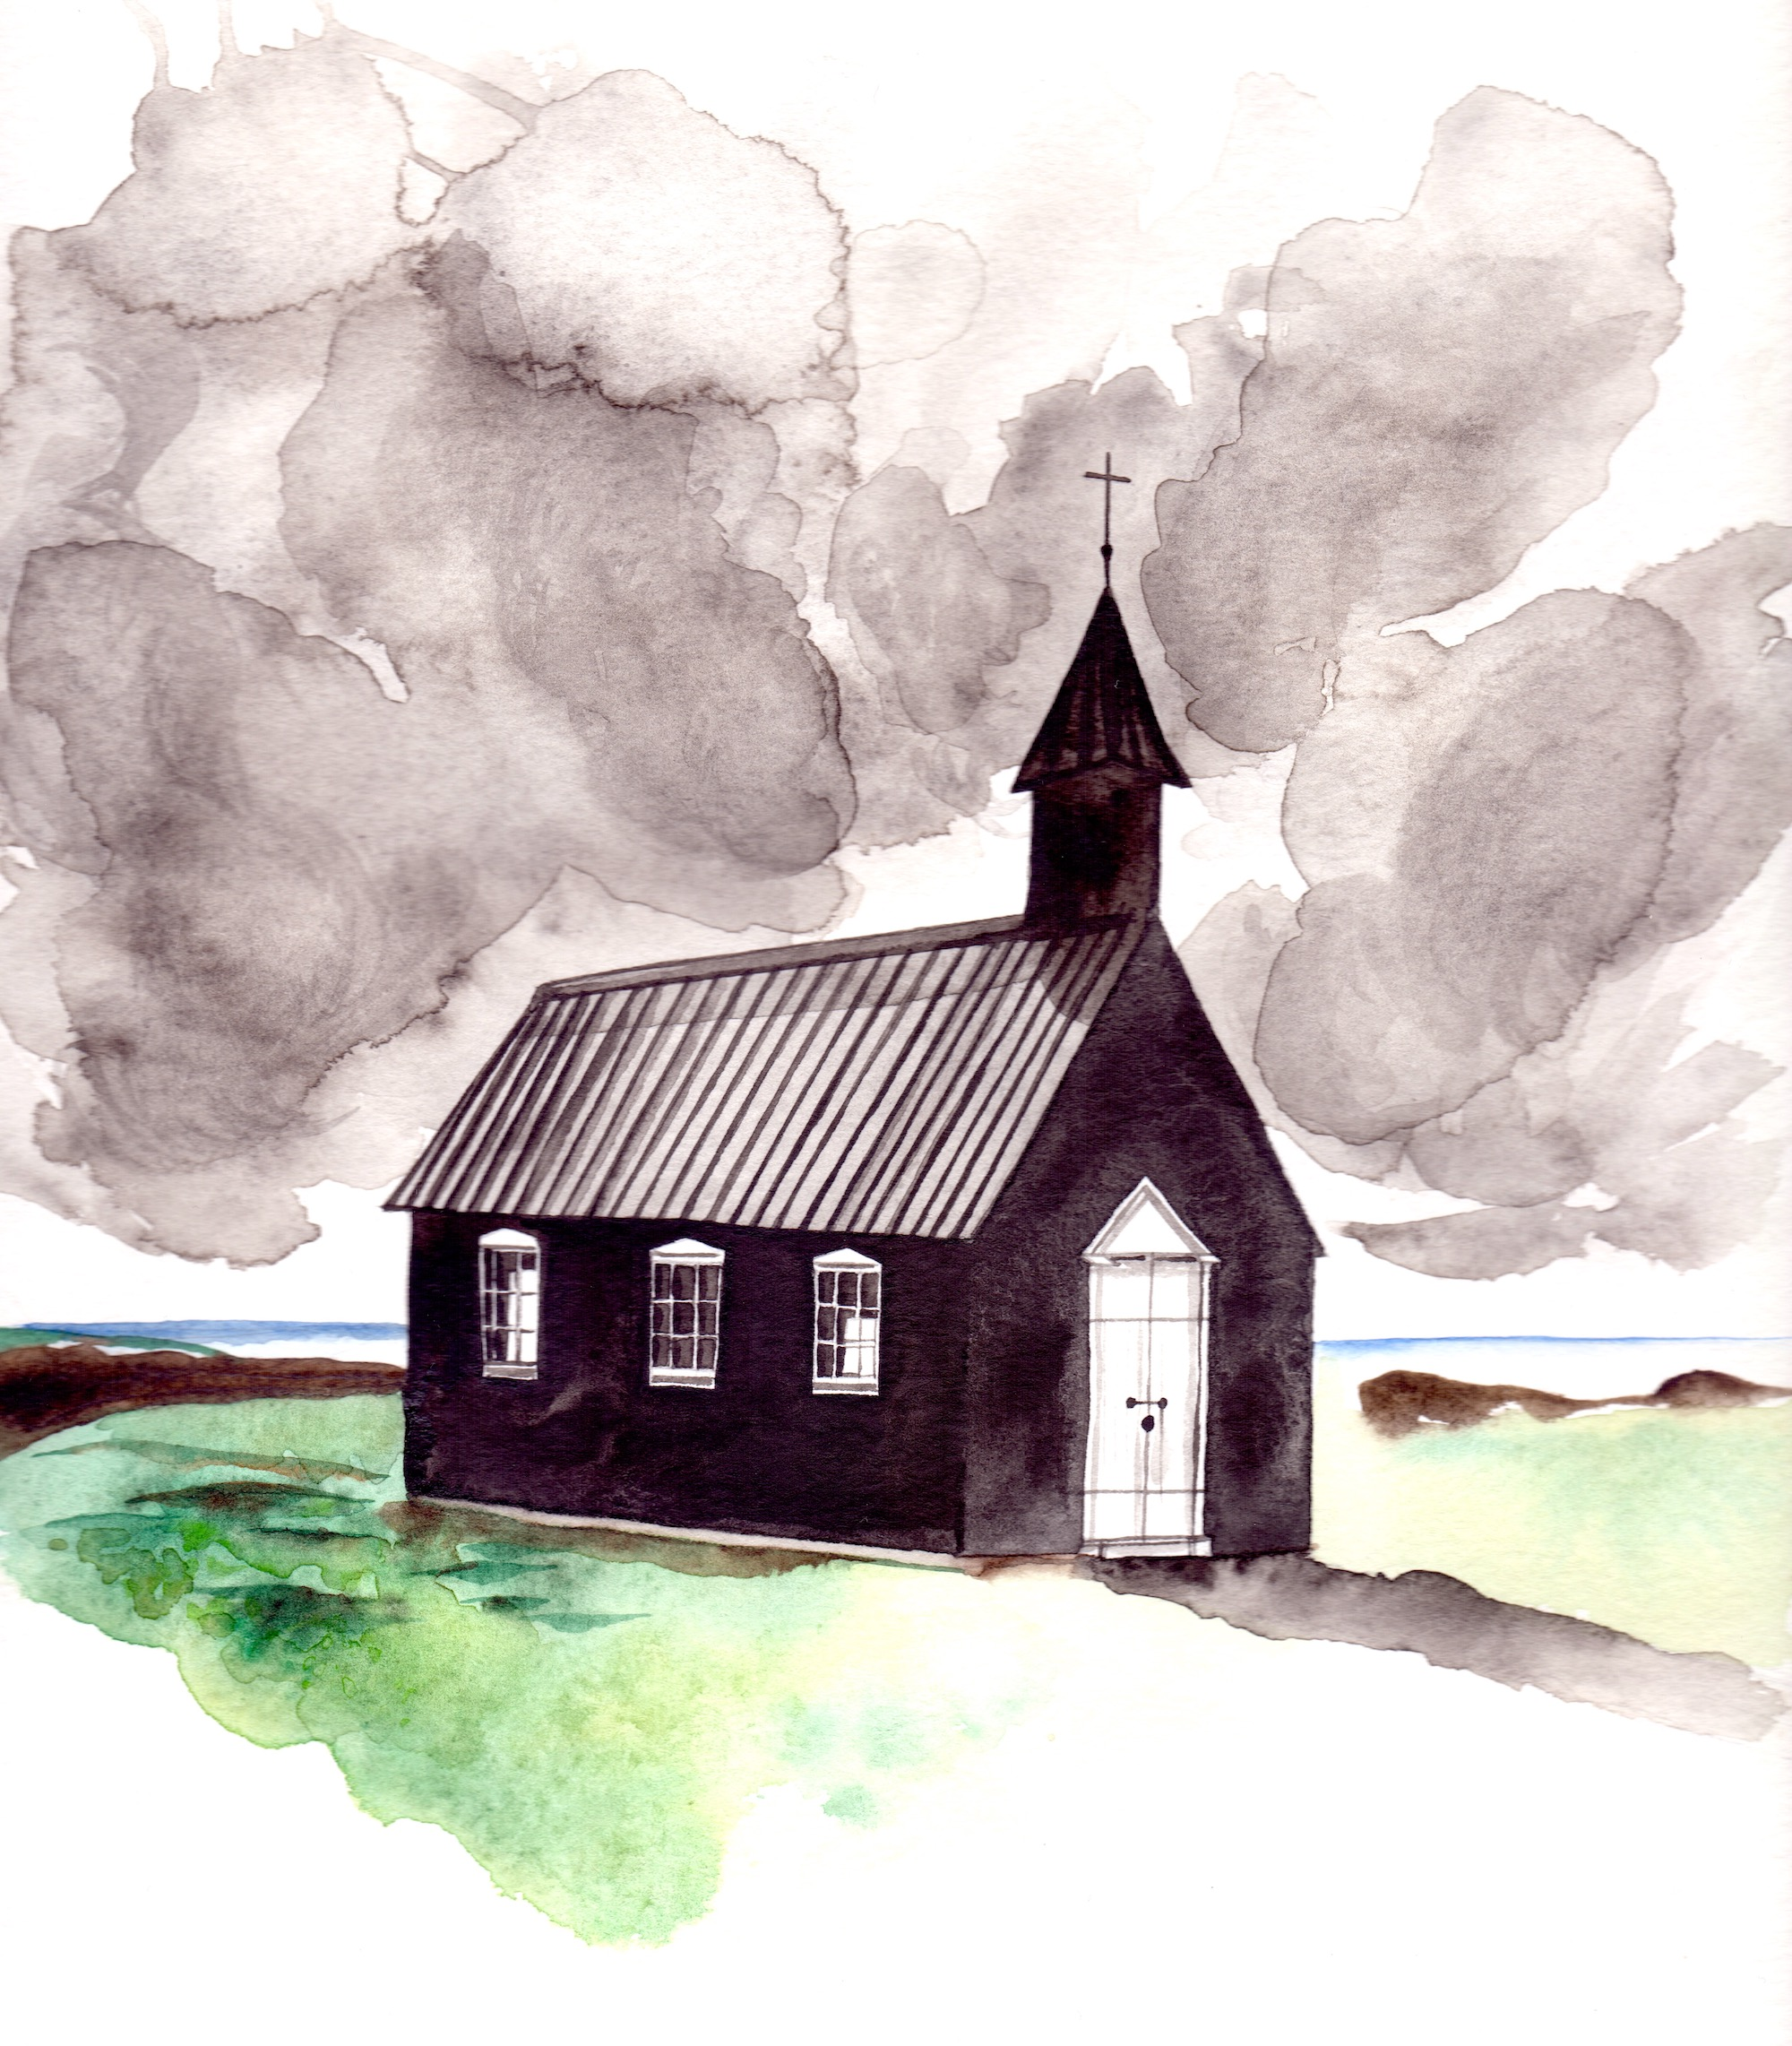 Illustrated wedding invitations showing a black church's watercolour